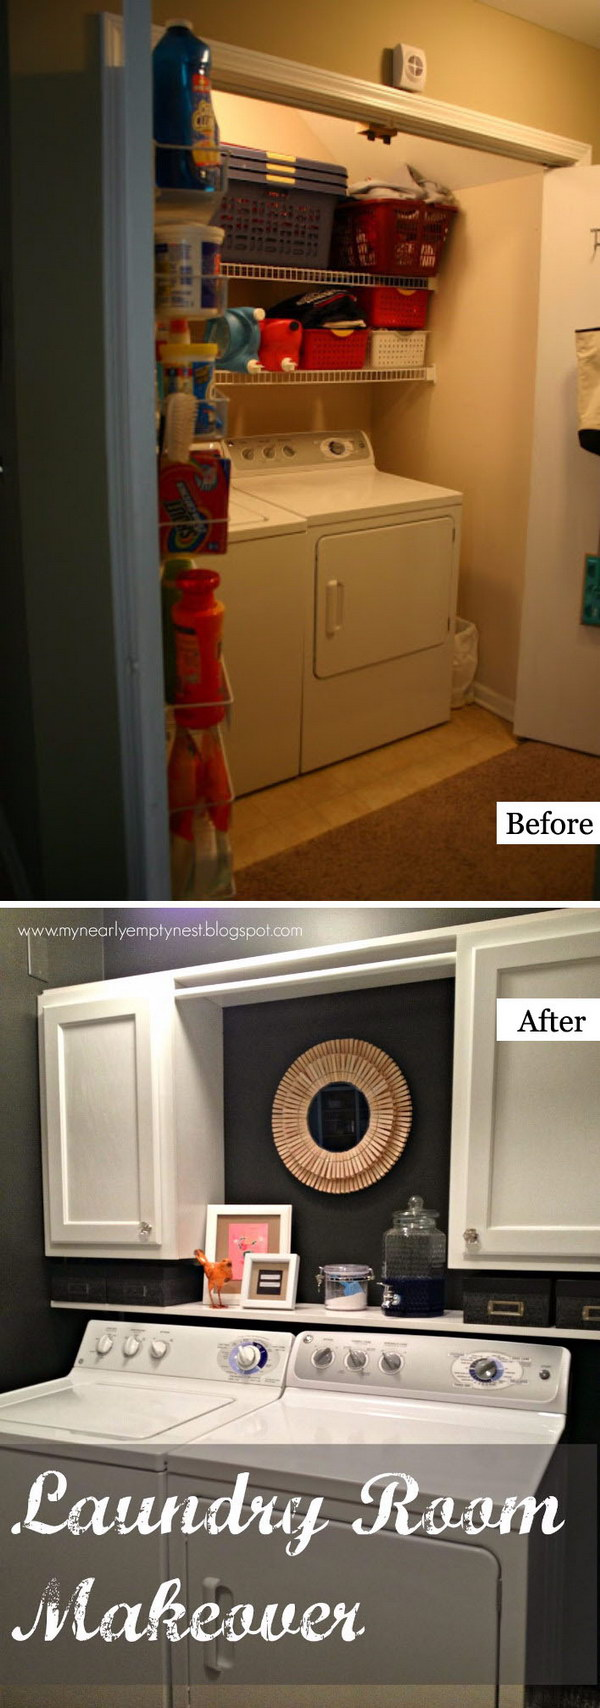 Great Laundry Room Makeover.